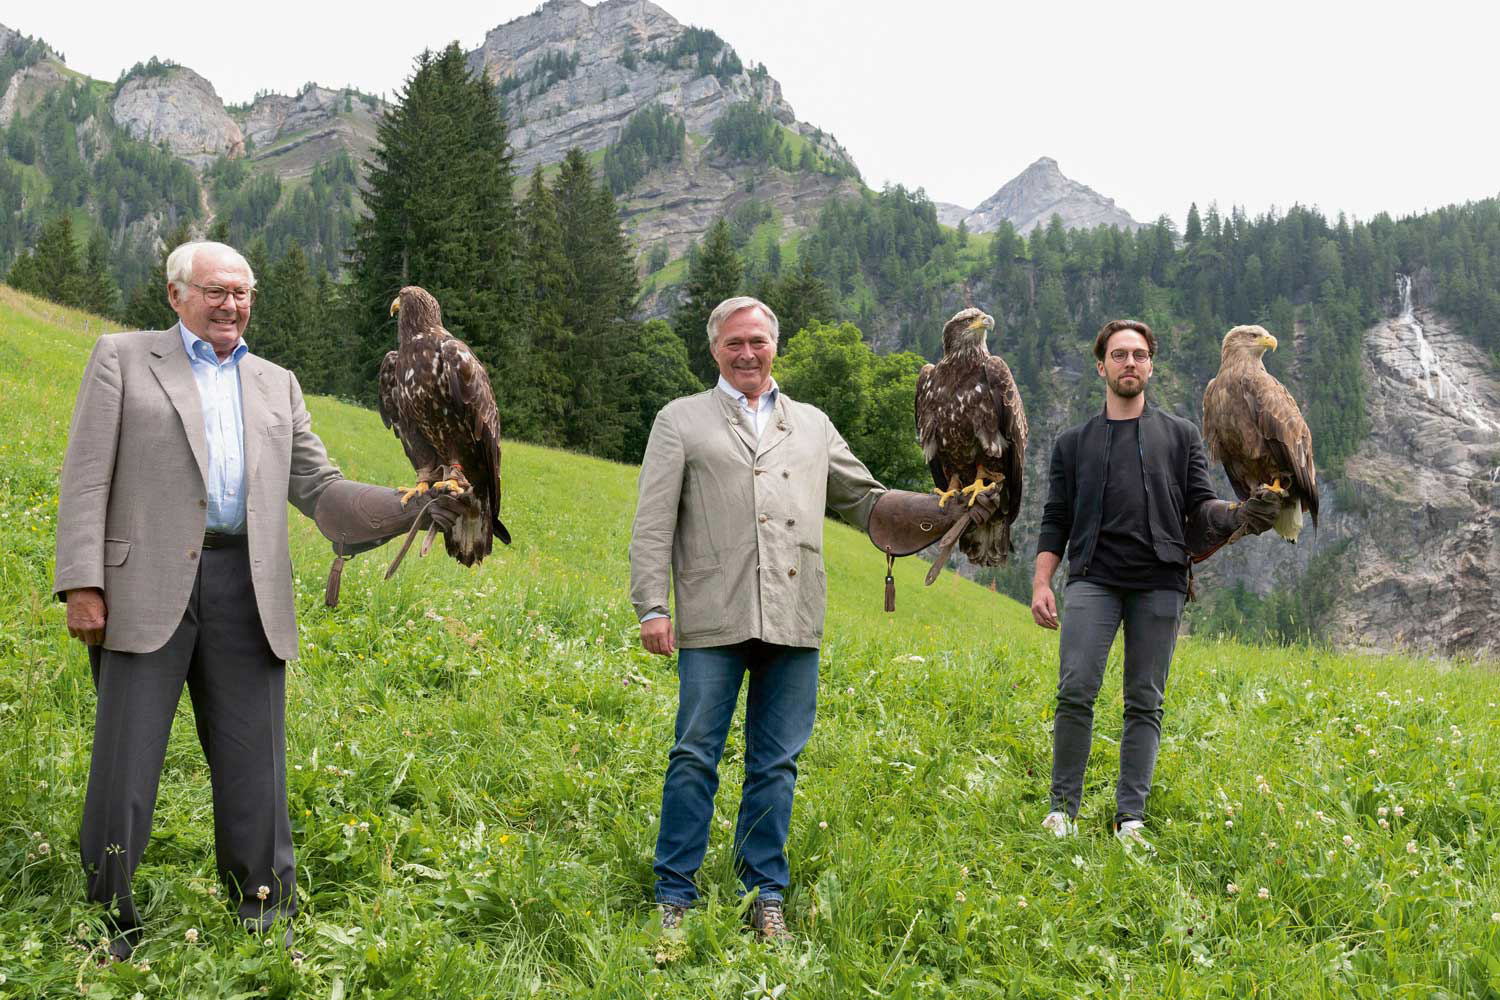 Three generations of Scheufele men, part of the story of how the Alpine Eagle came about